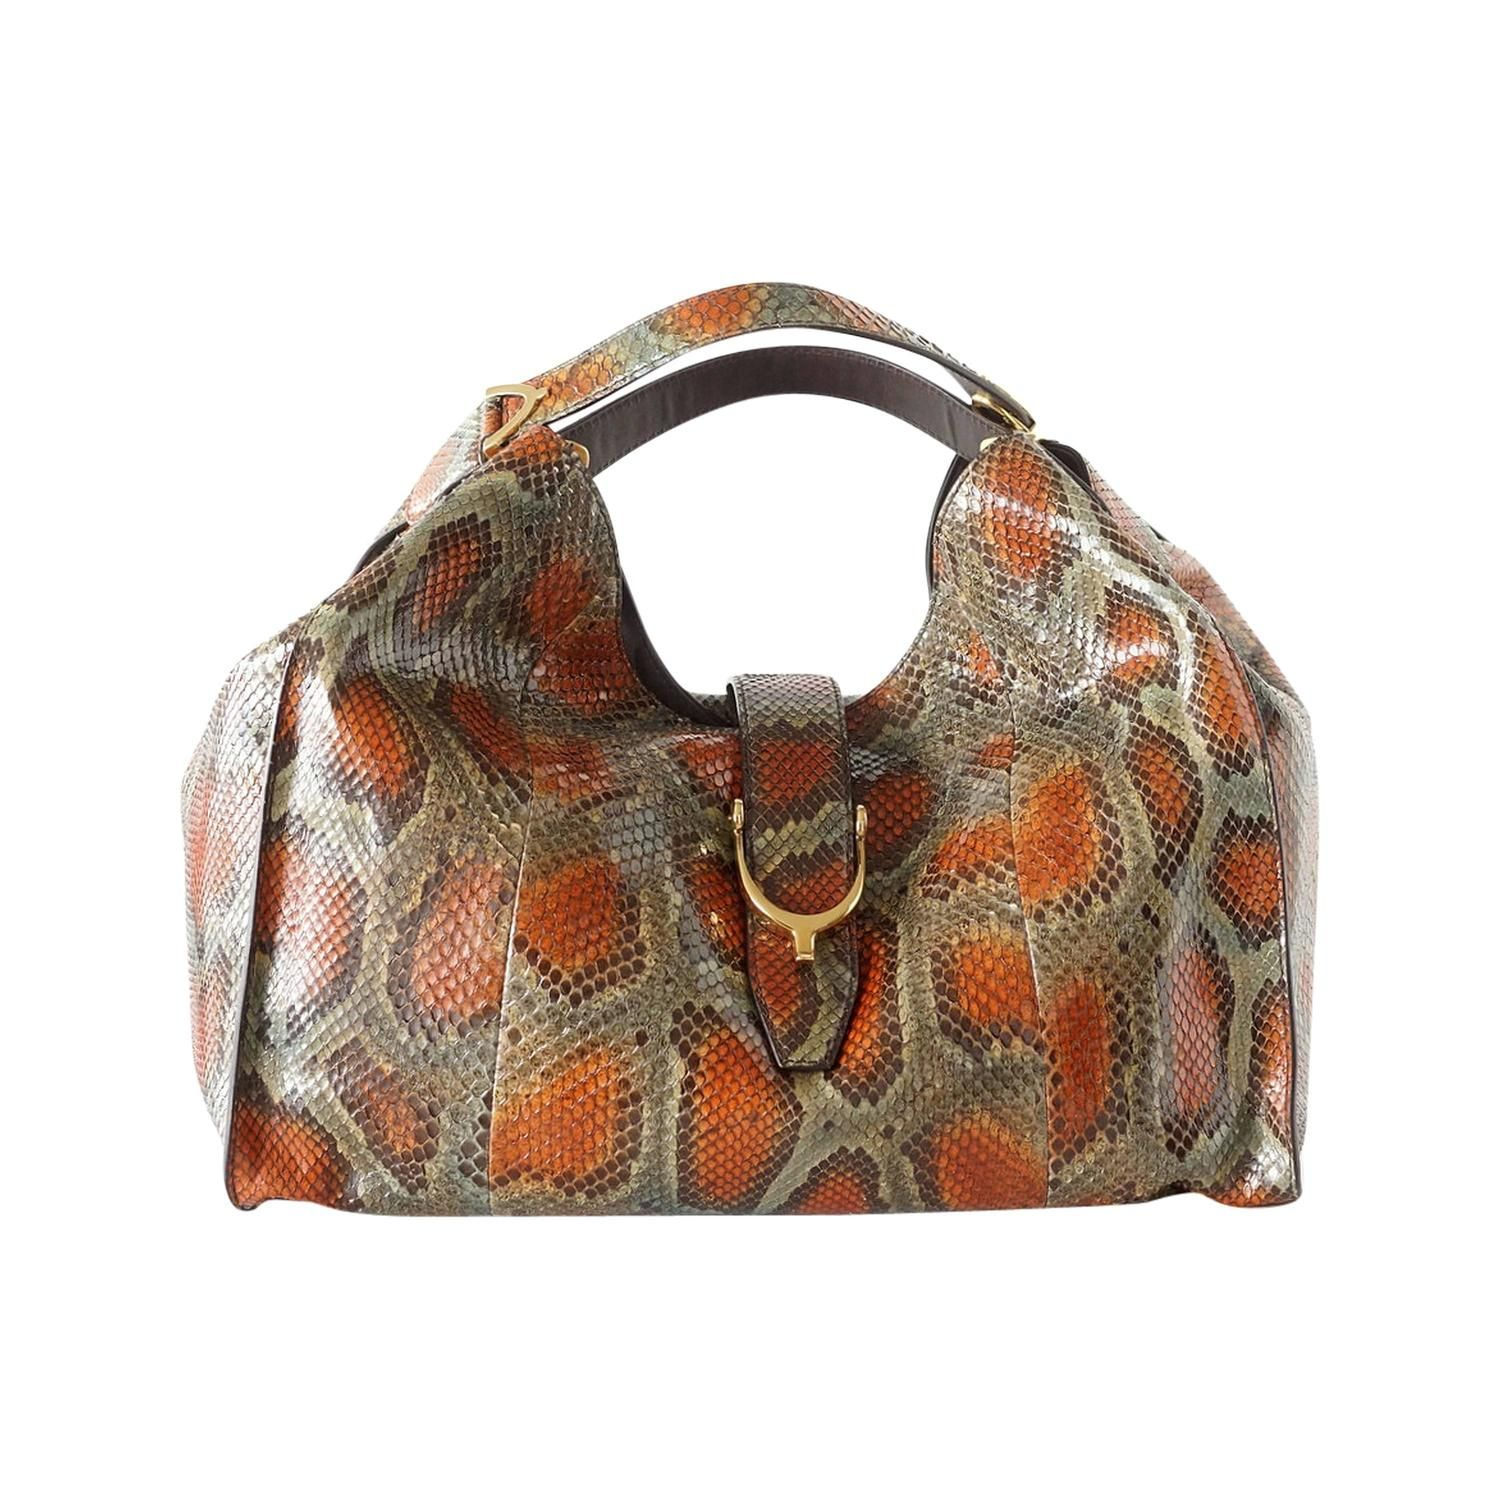 c11dedf6e64 GUCCI bag Stirrup hardware python large tote sold out colour nwt ...